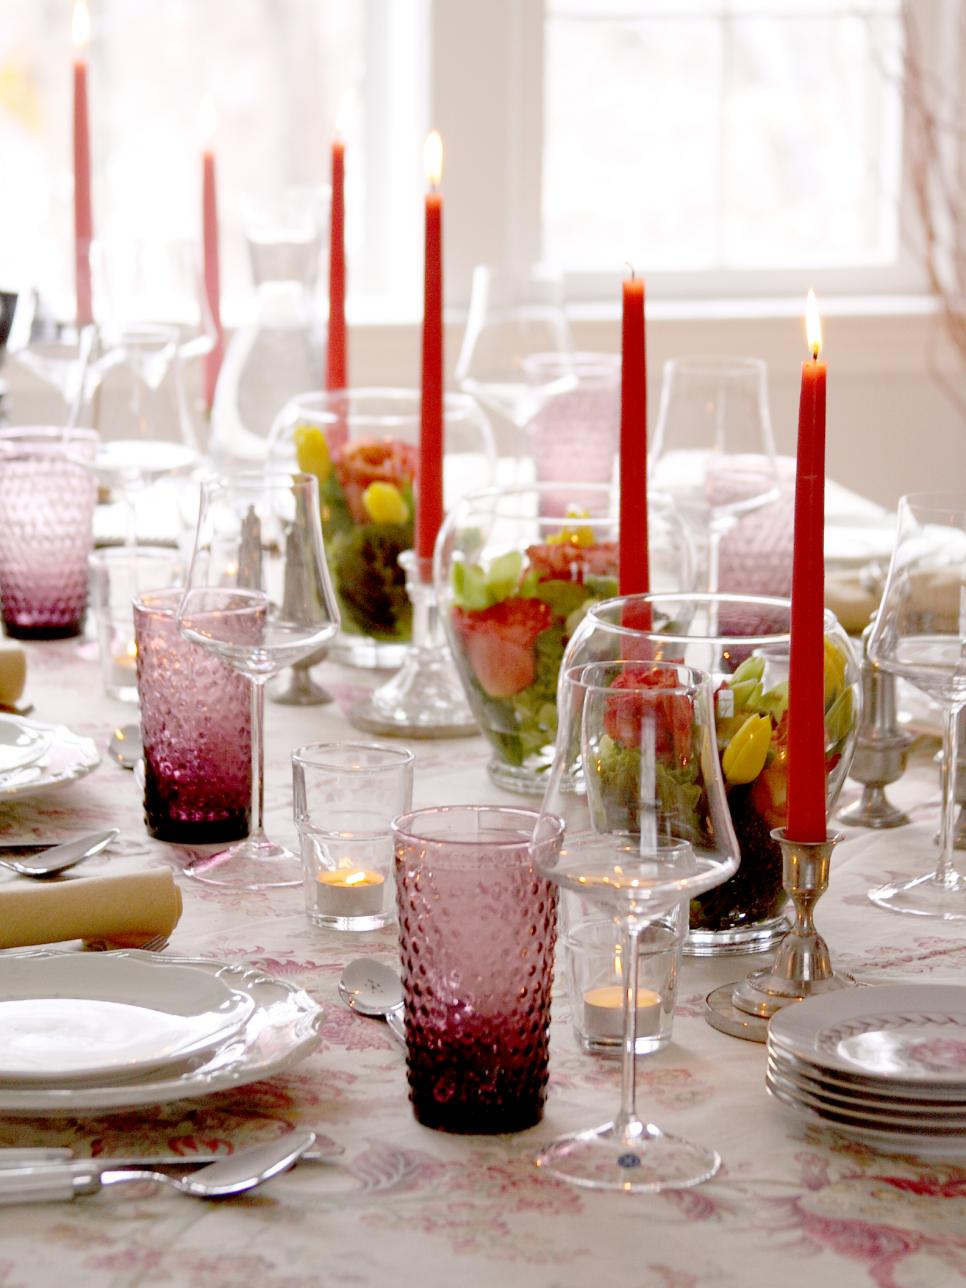 Modern restaurant table setting - Modern Restaurant Table Setting 46